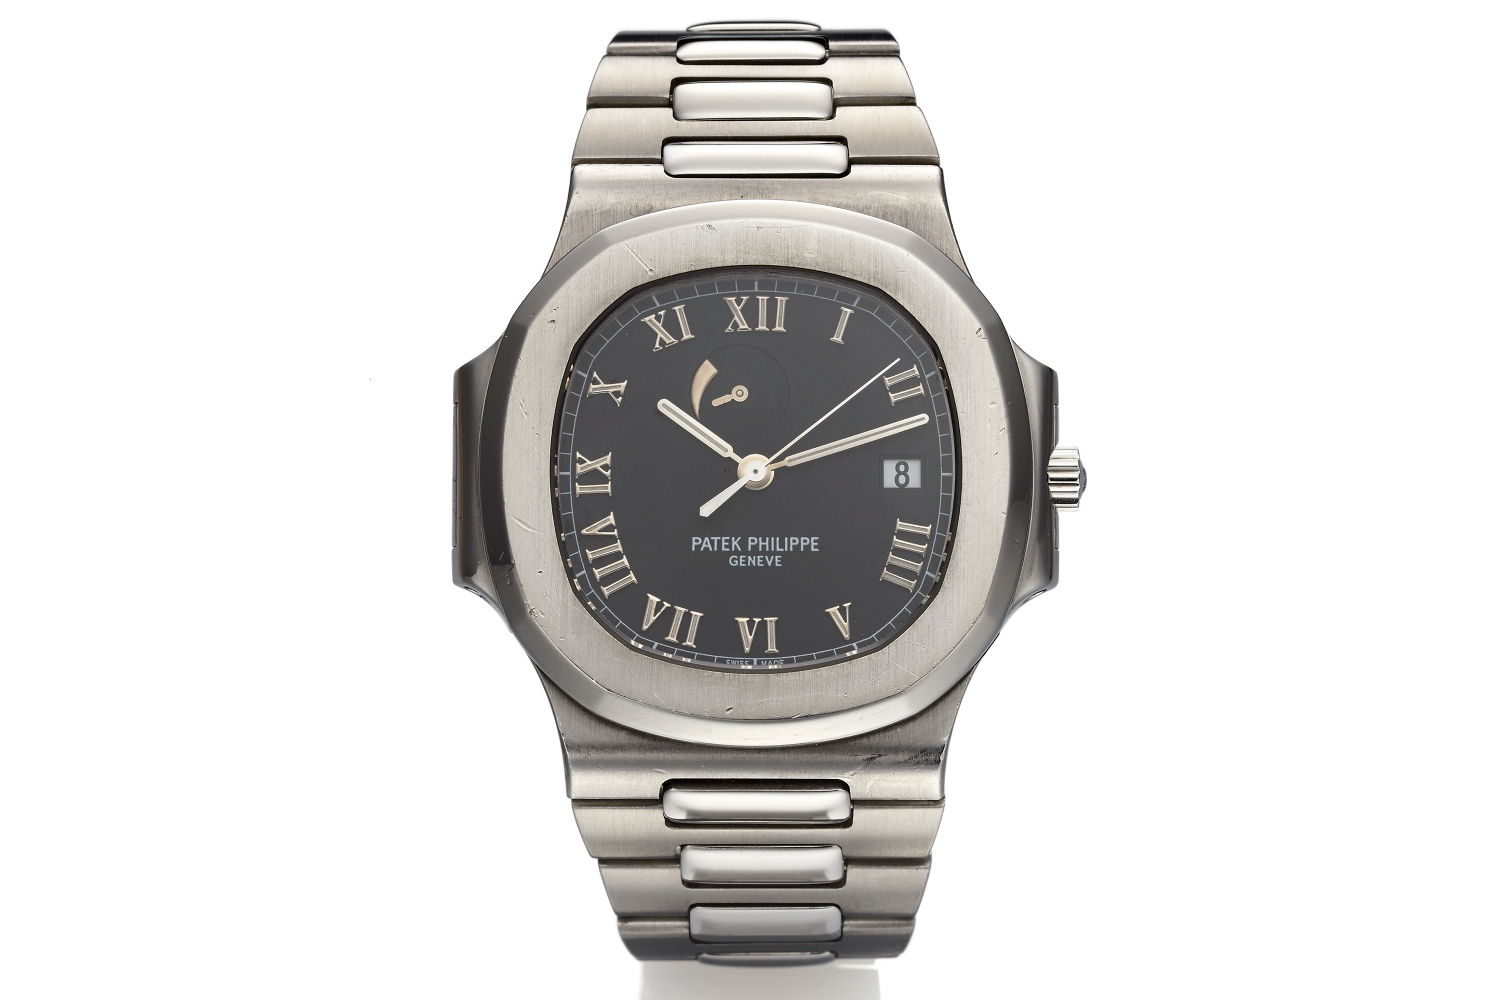 Patek Philippe Nautilus Ref. 3710 1A Antiquorum cropped.jpg